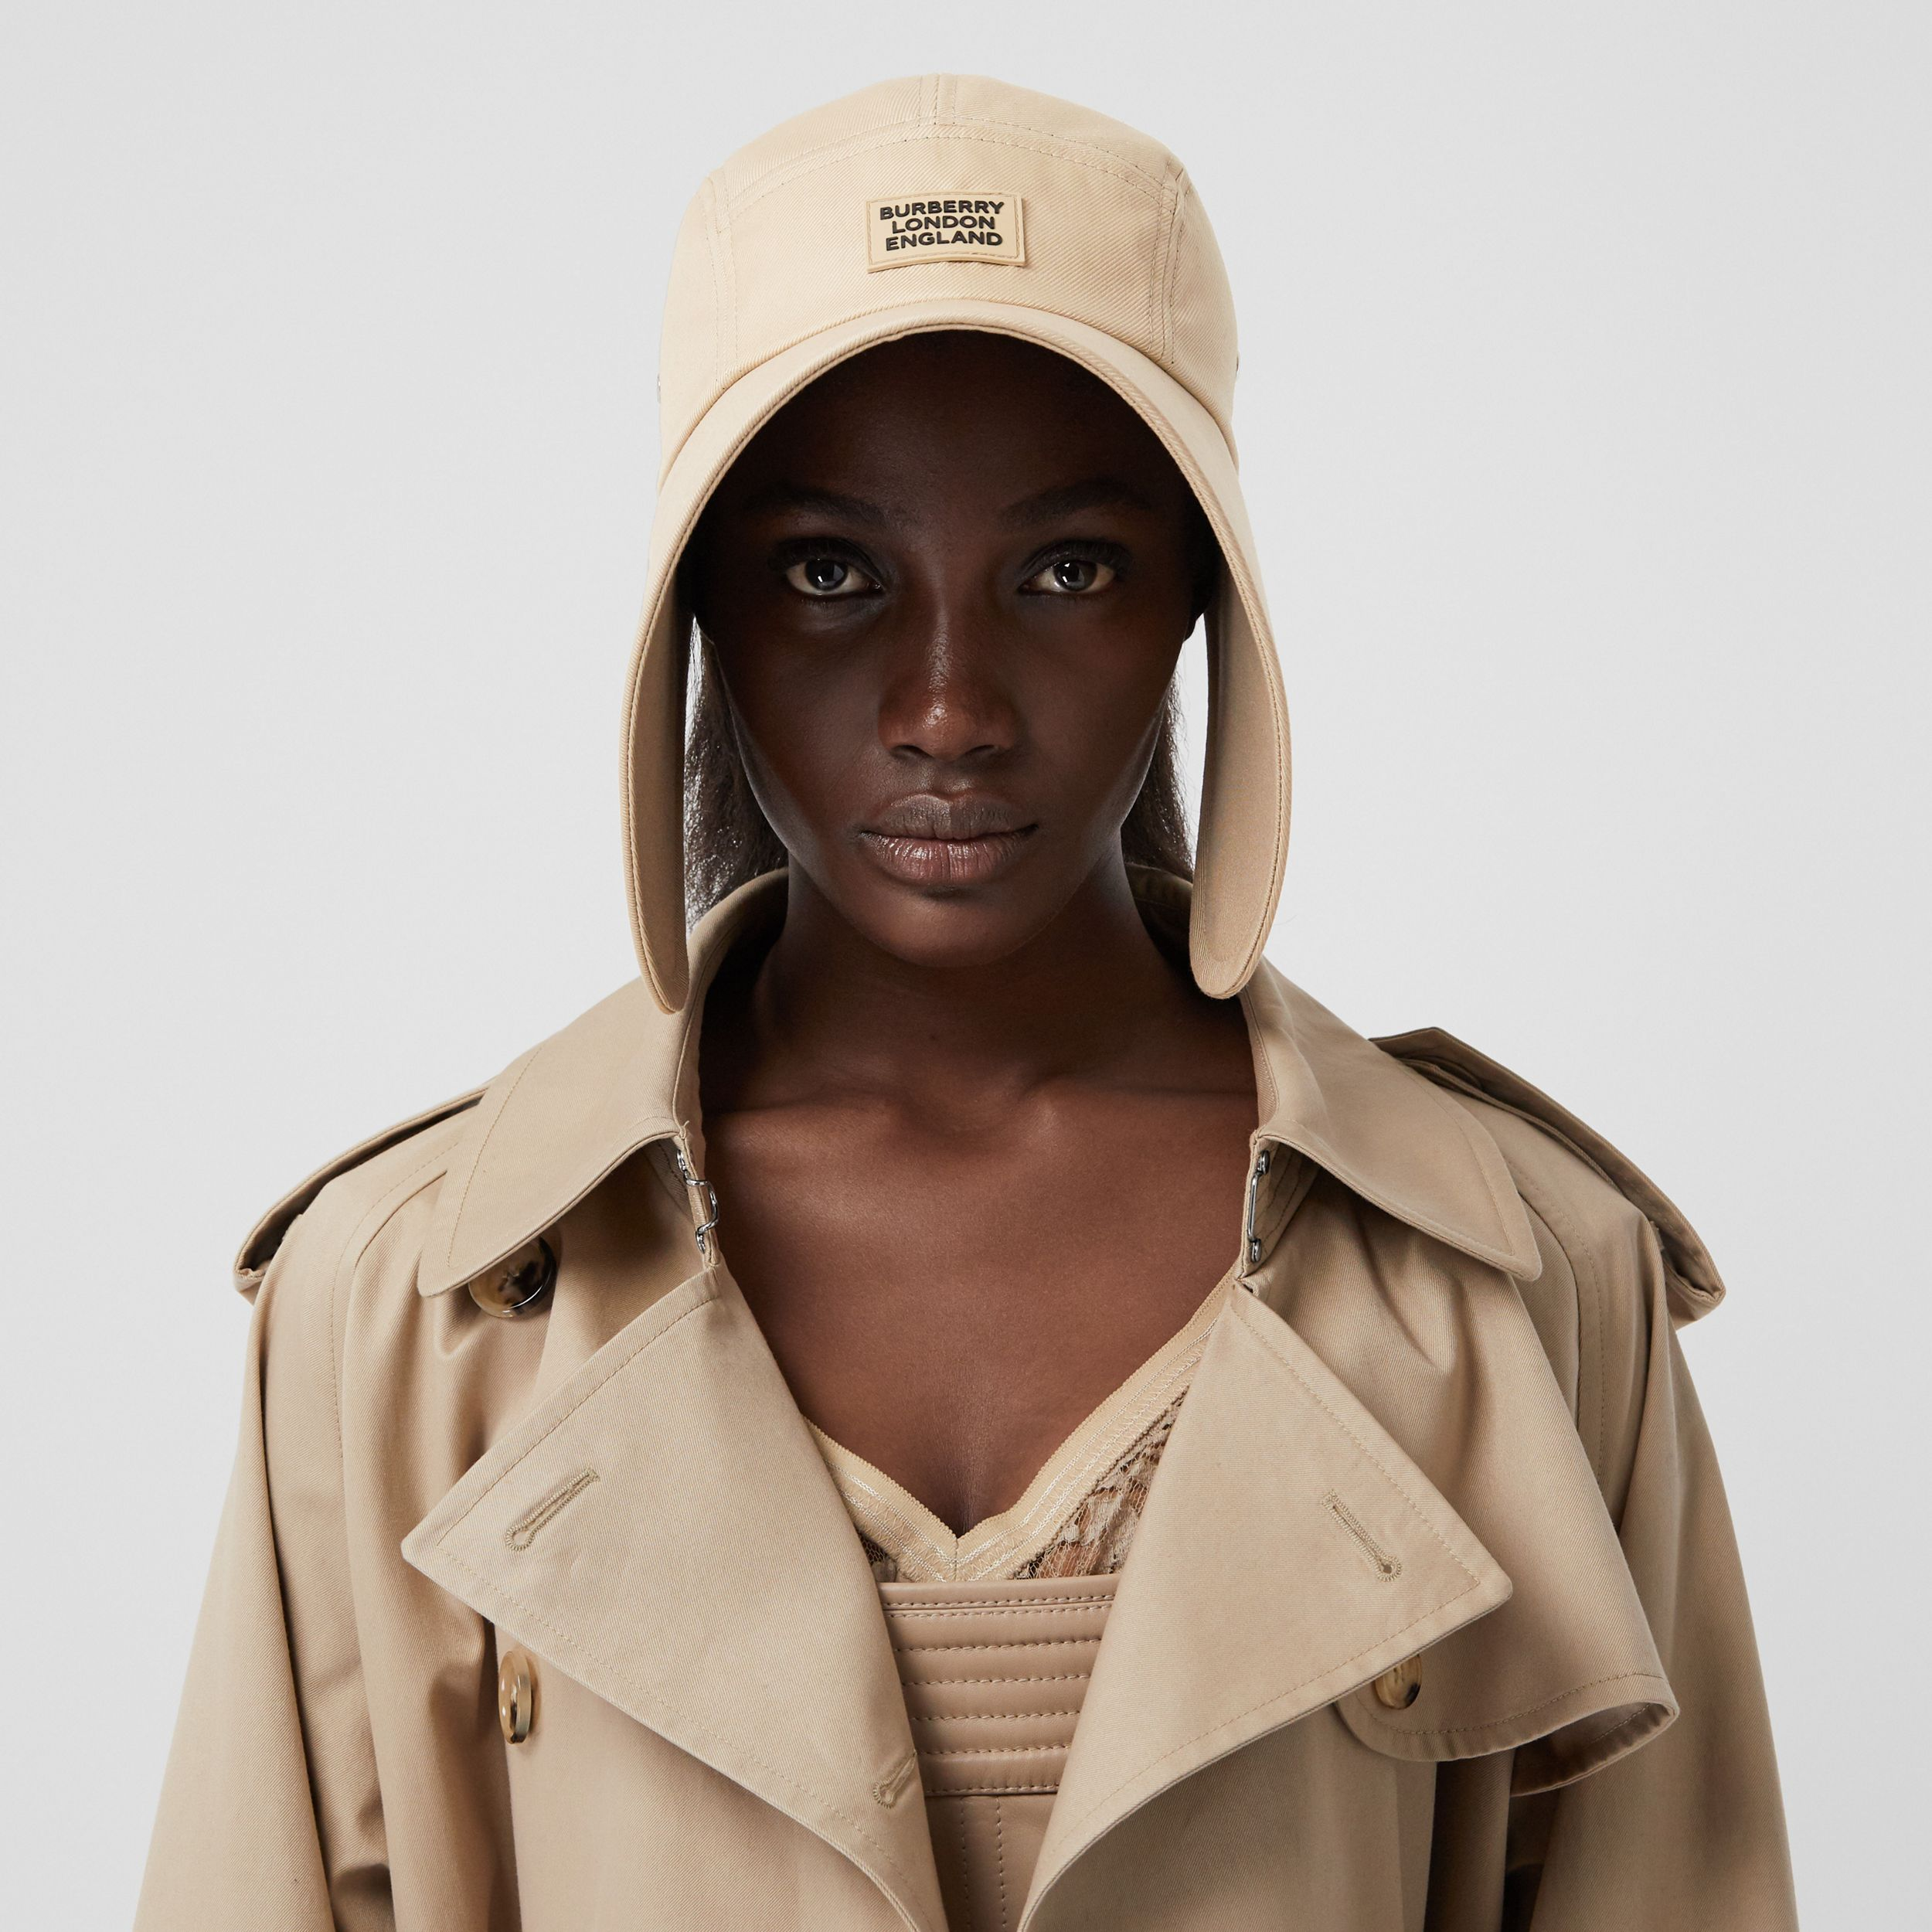 Logo Appliqué Cotton Twill Bonnet Cap in Soft Fawn | Burberry United States - 3